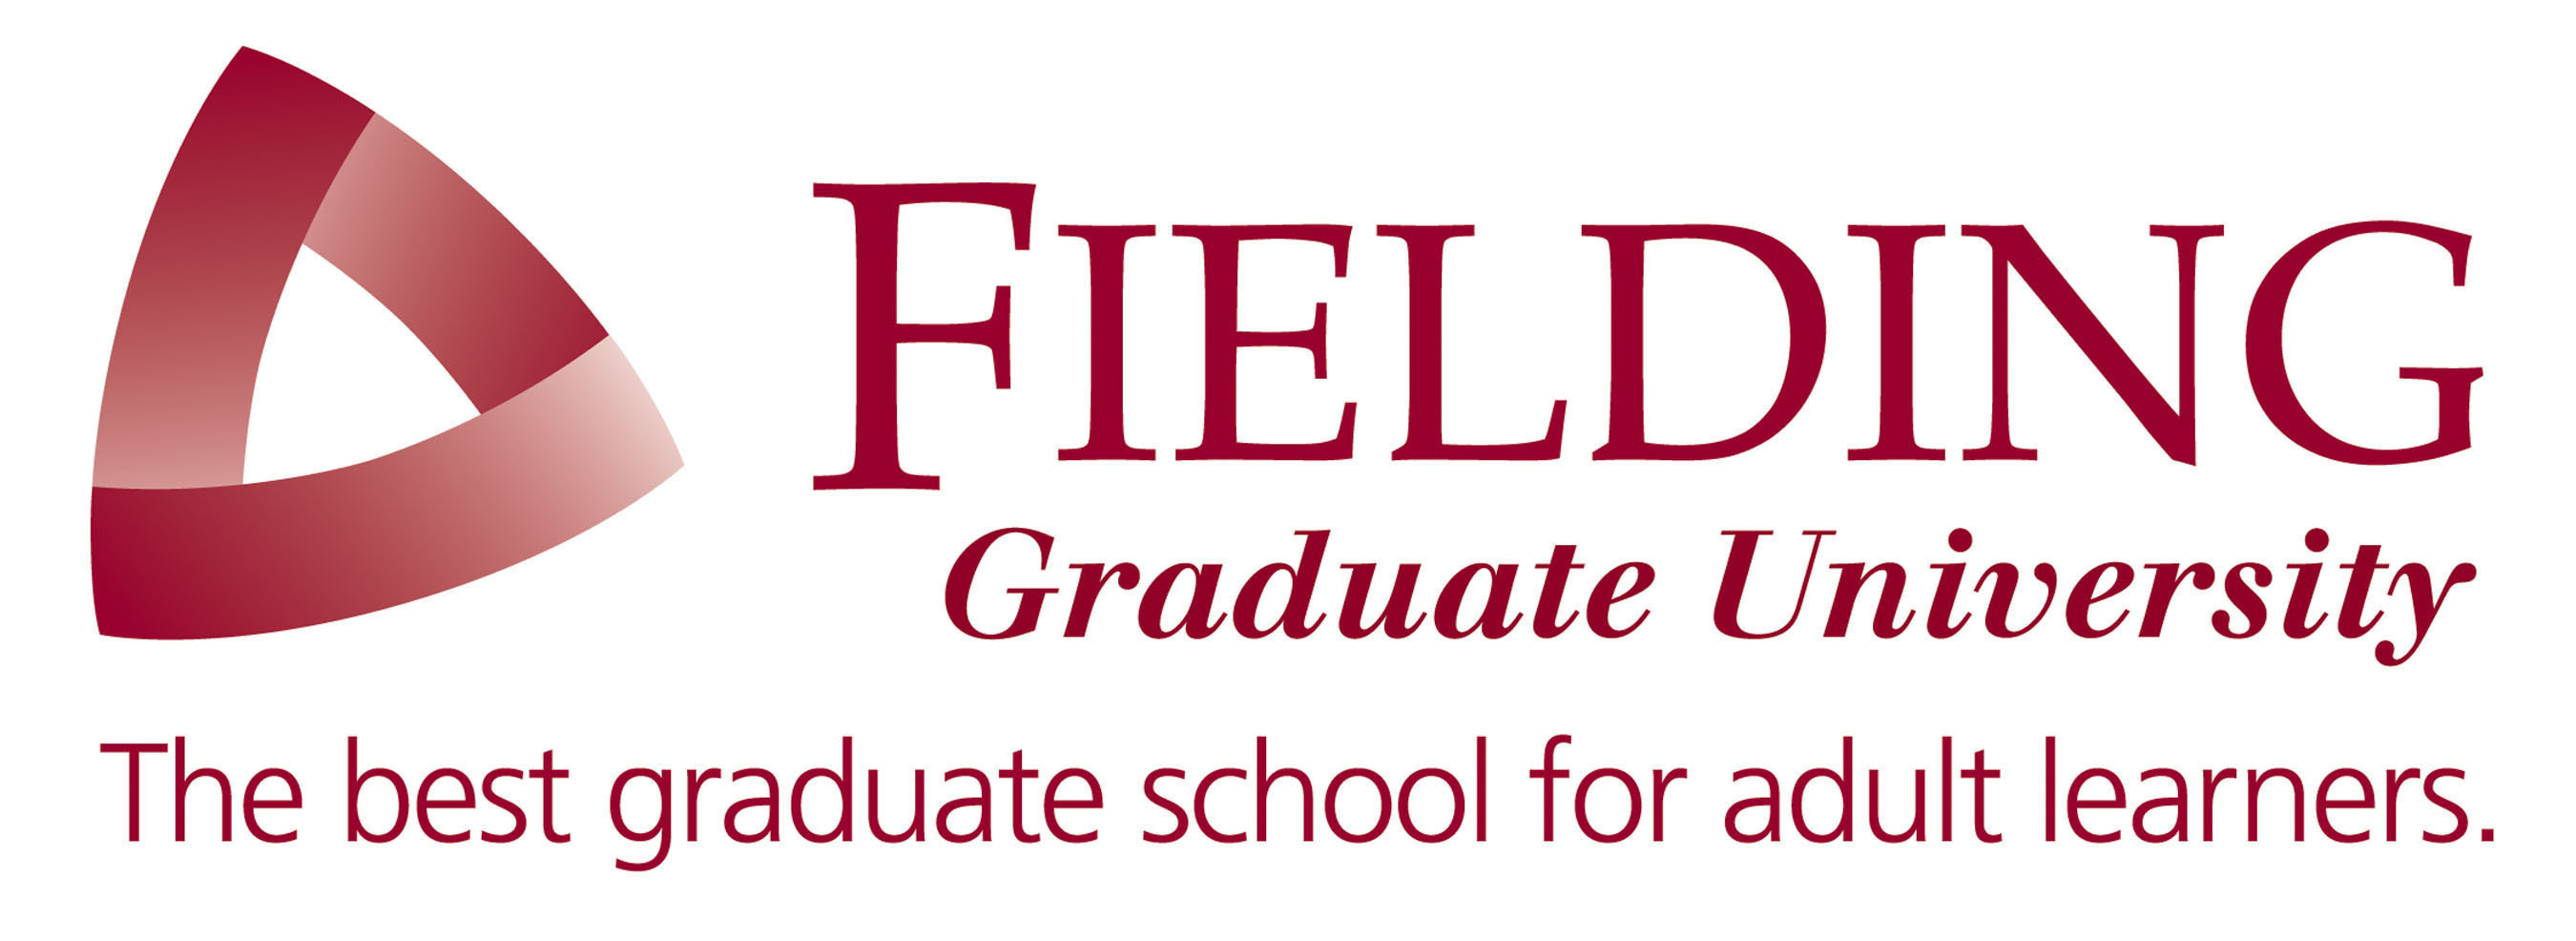 Fielding Graduate University is an accredited nonprofit leader in blended graduate education, combining ...